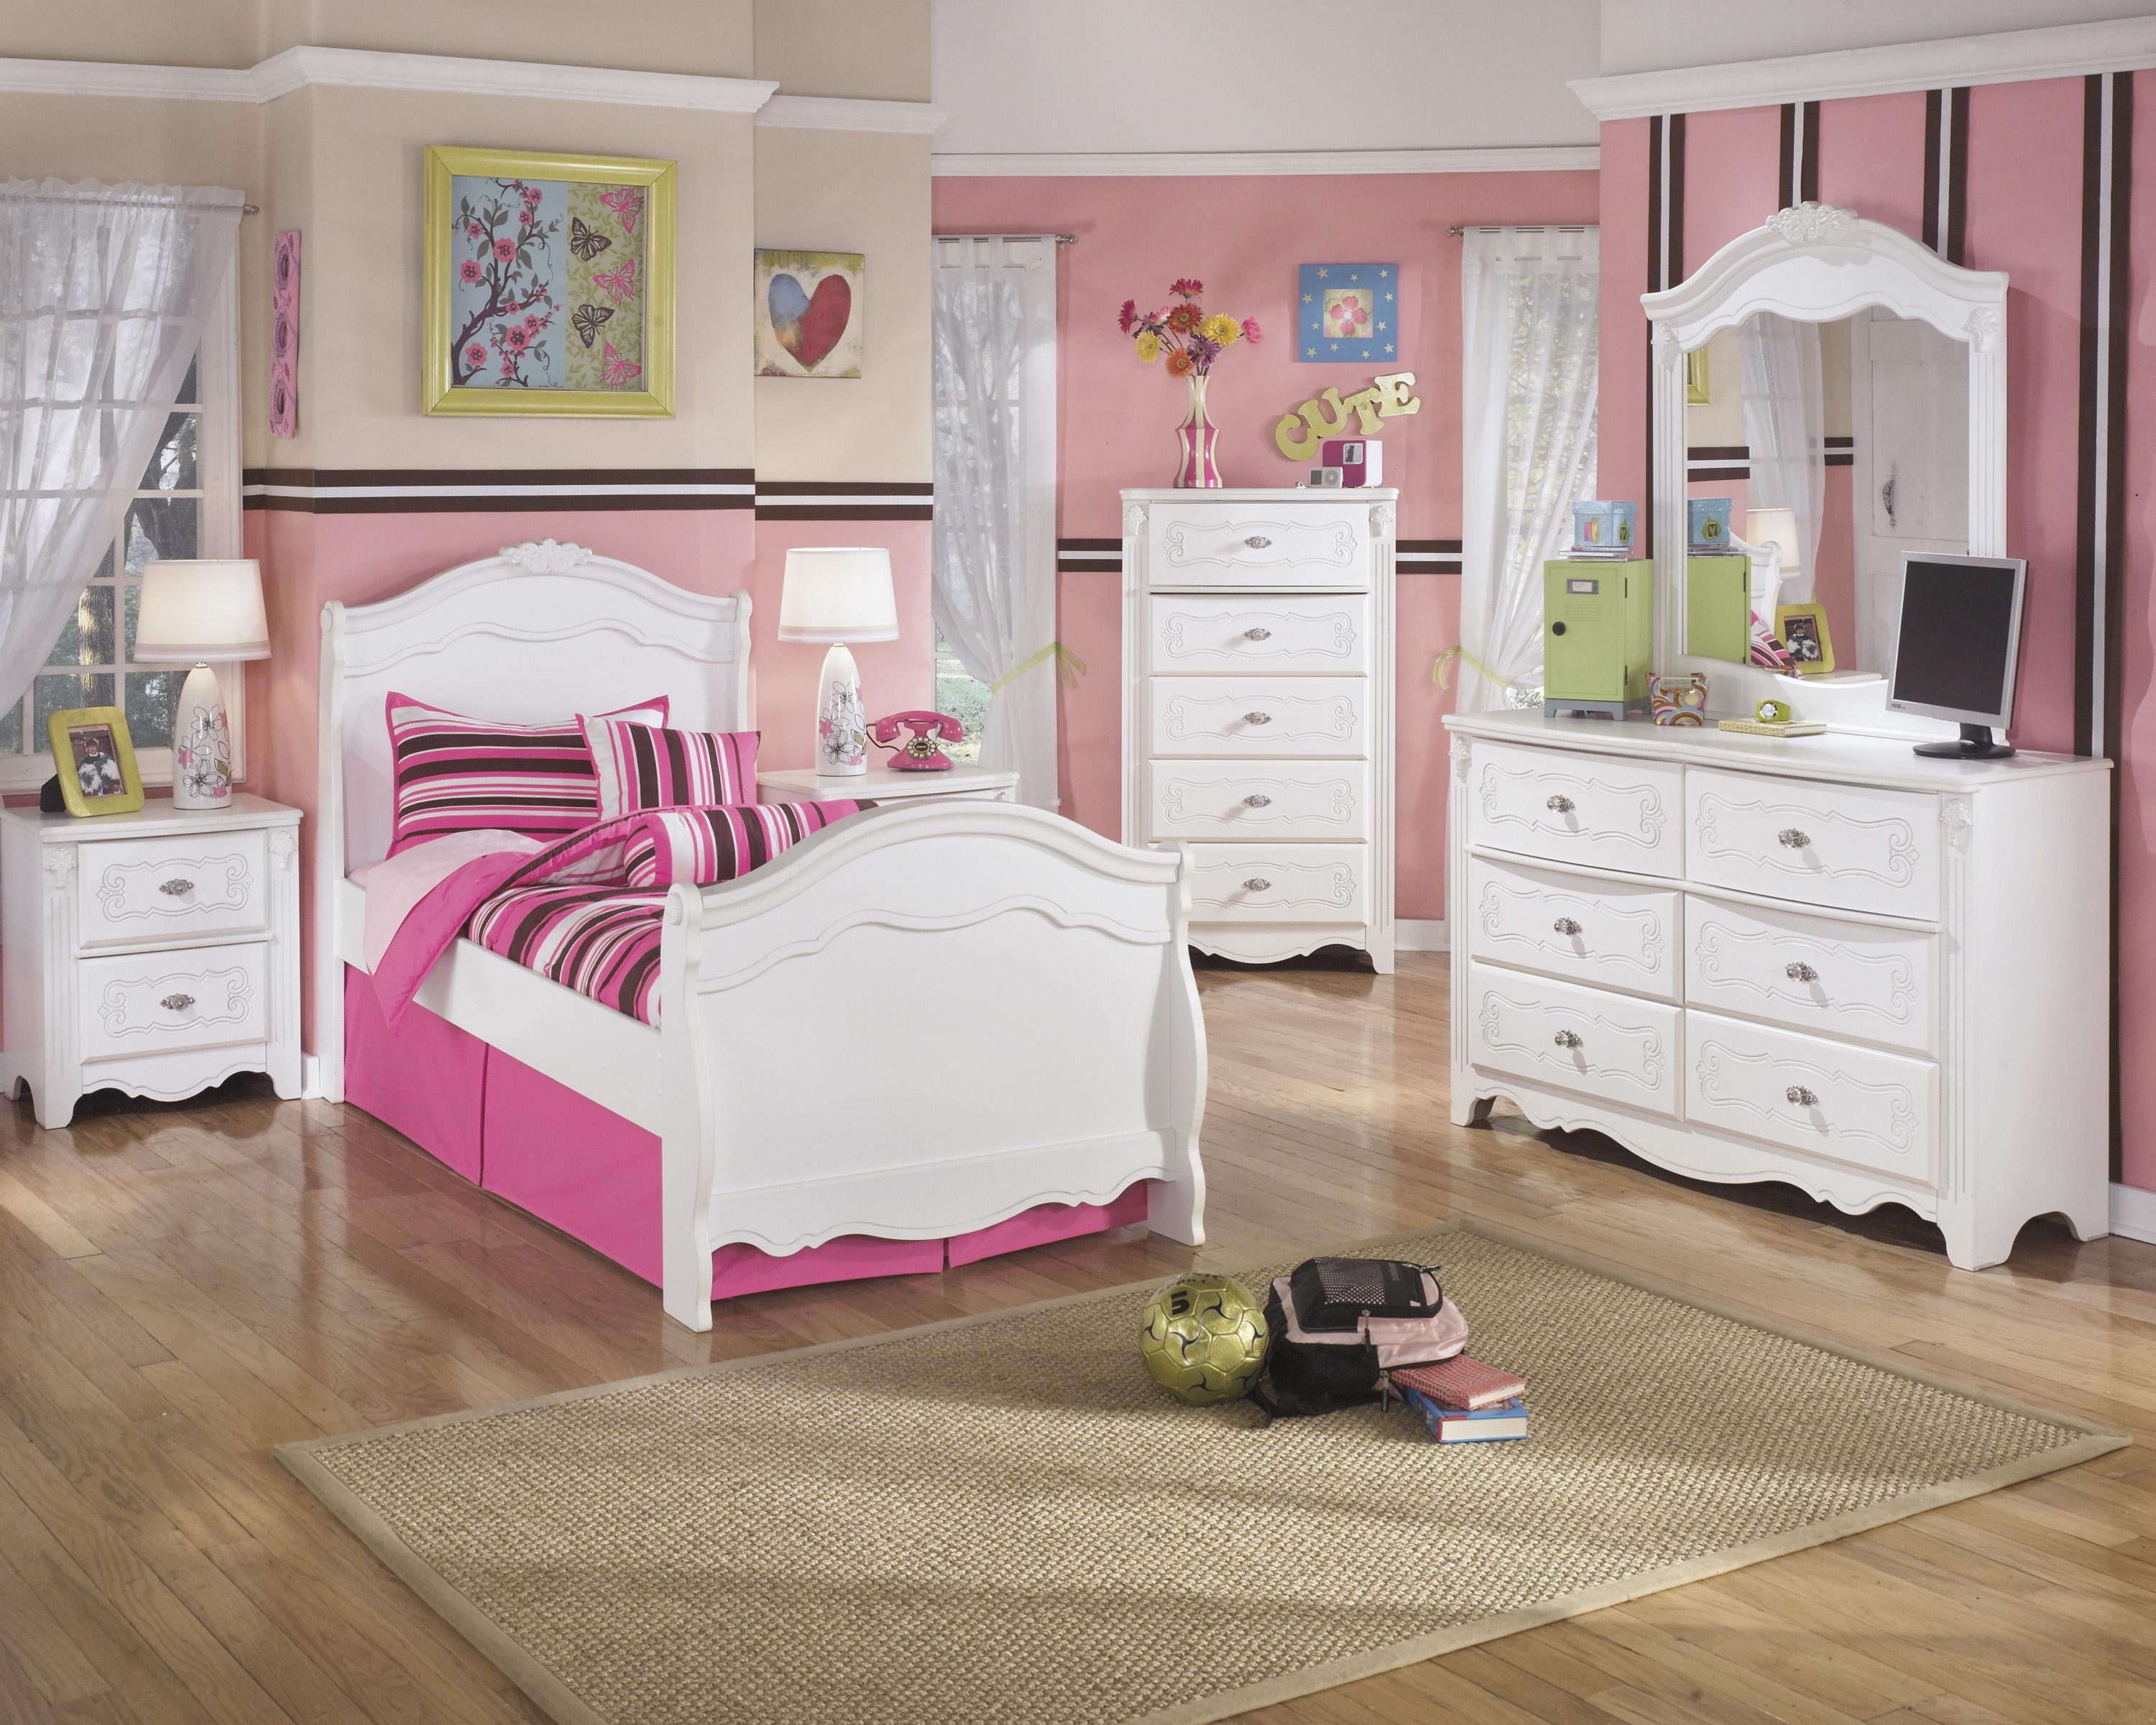 Signature Design by Ashley Exquisite Twin Bedroom Group - Item Number: B188 T Bedroom Group 1